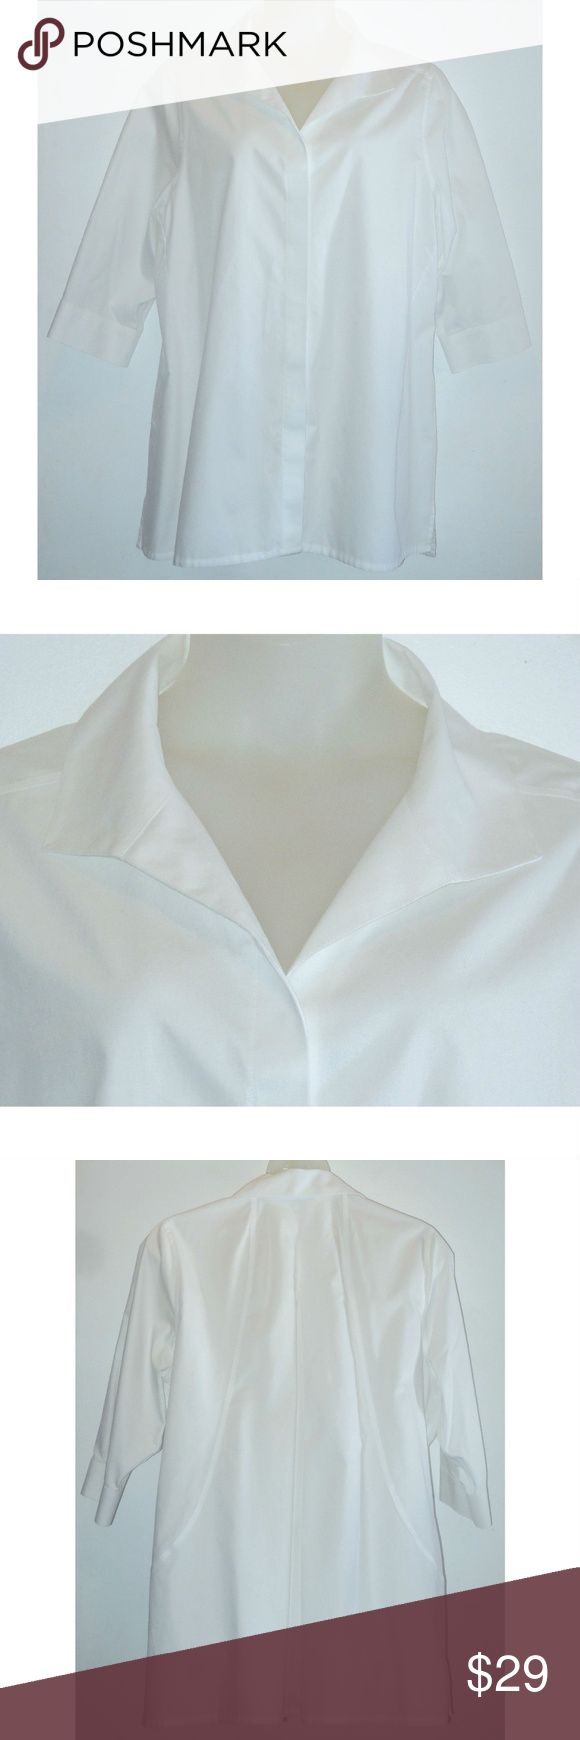 """FOXCROFT White Tunic 20W Cotton Non Iron Shirt Tunic length shirt from Foxcroft in white non iron cotton.  Features:  Winged collar hidden button front 3/4 length sleeves 3.5"""" side vents  Measurements: Size 20W Bust 54"""" Length 33"""" back neck to hem All Measurements Are Approximate  Measurements Taken Flat & Unstretched Item Specifics: 100% Cotton Machine Wash In Excellent Condition With No Flaws Noted Foxcroft Tops Tunics"""